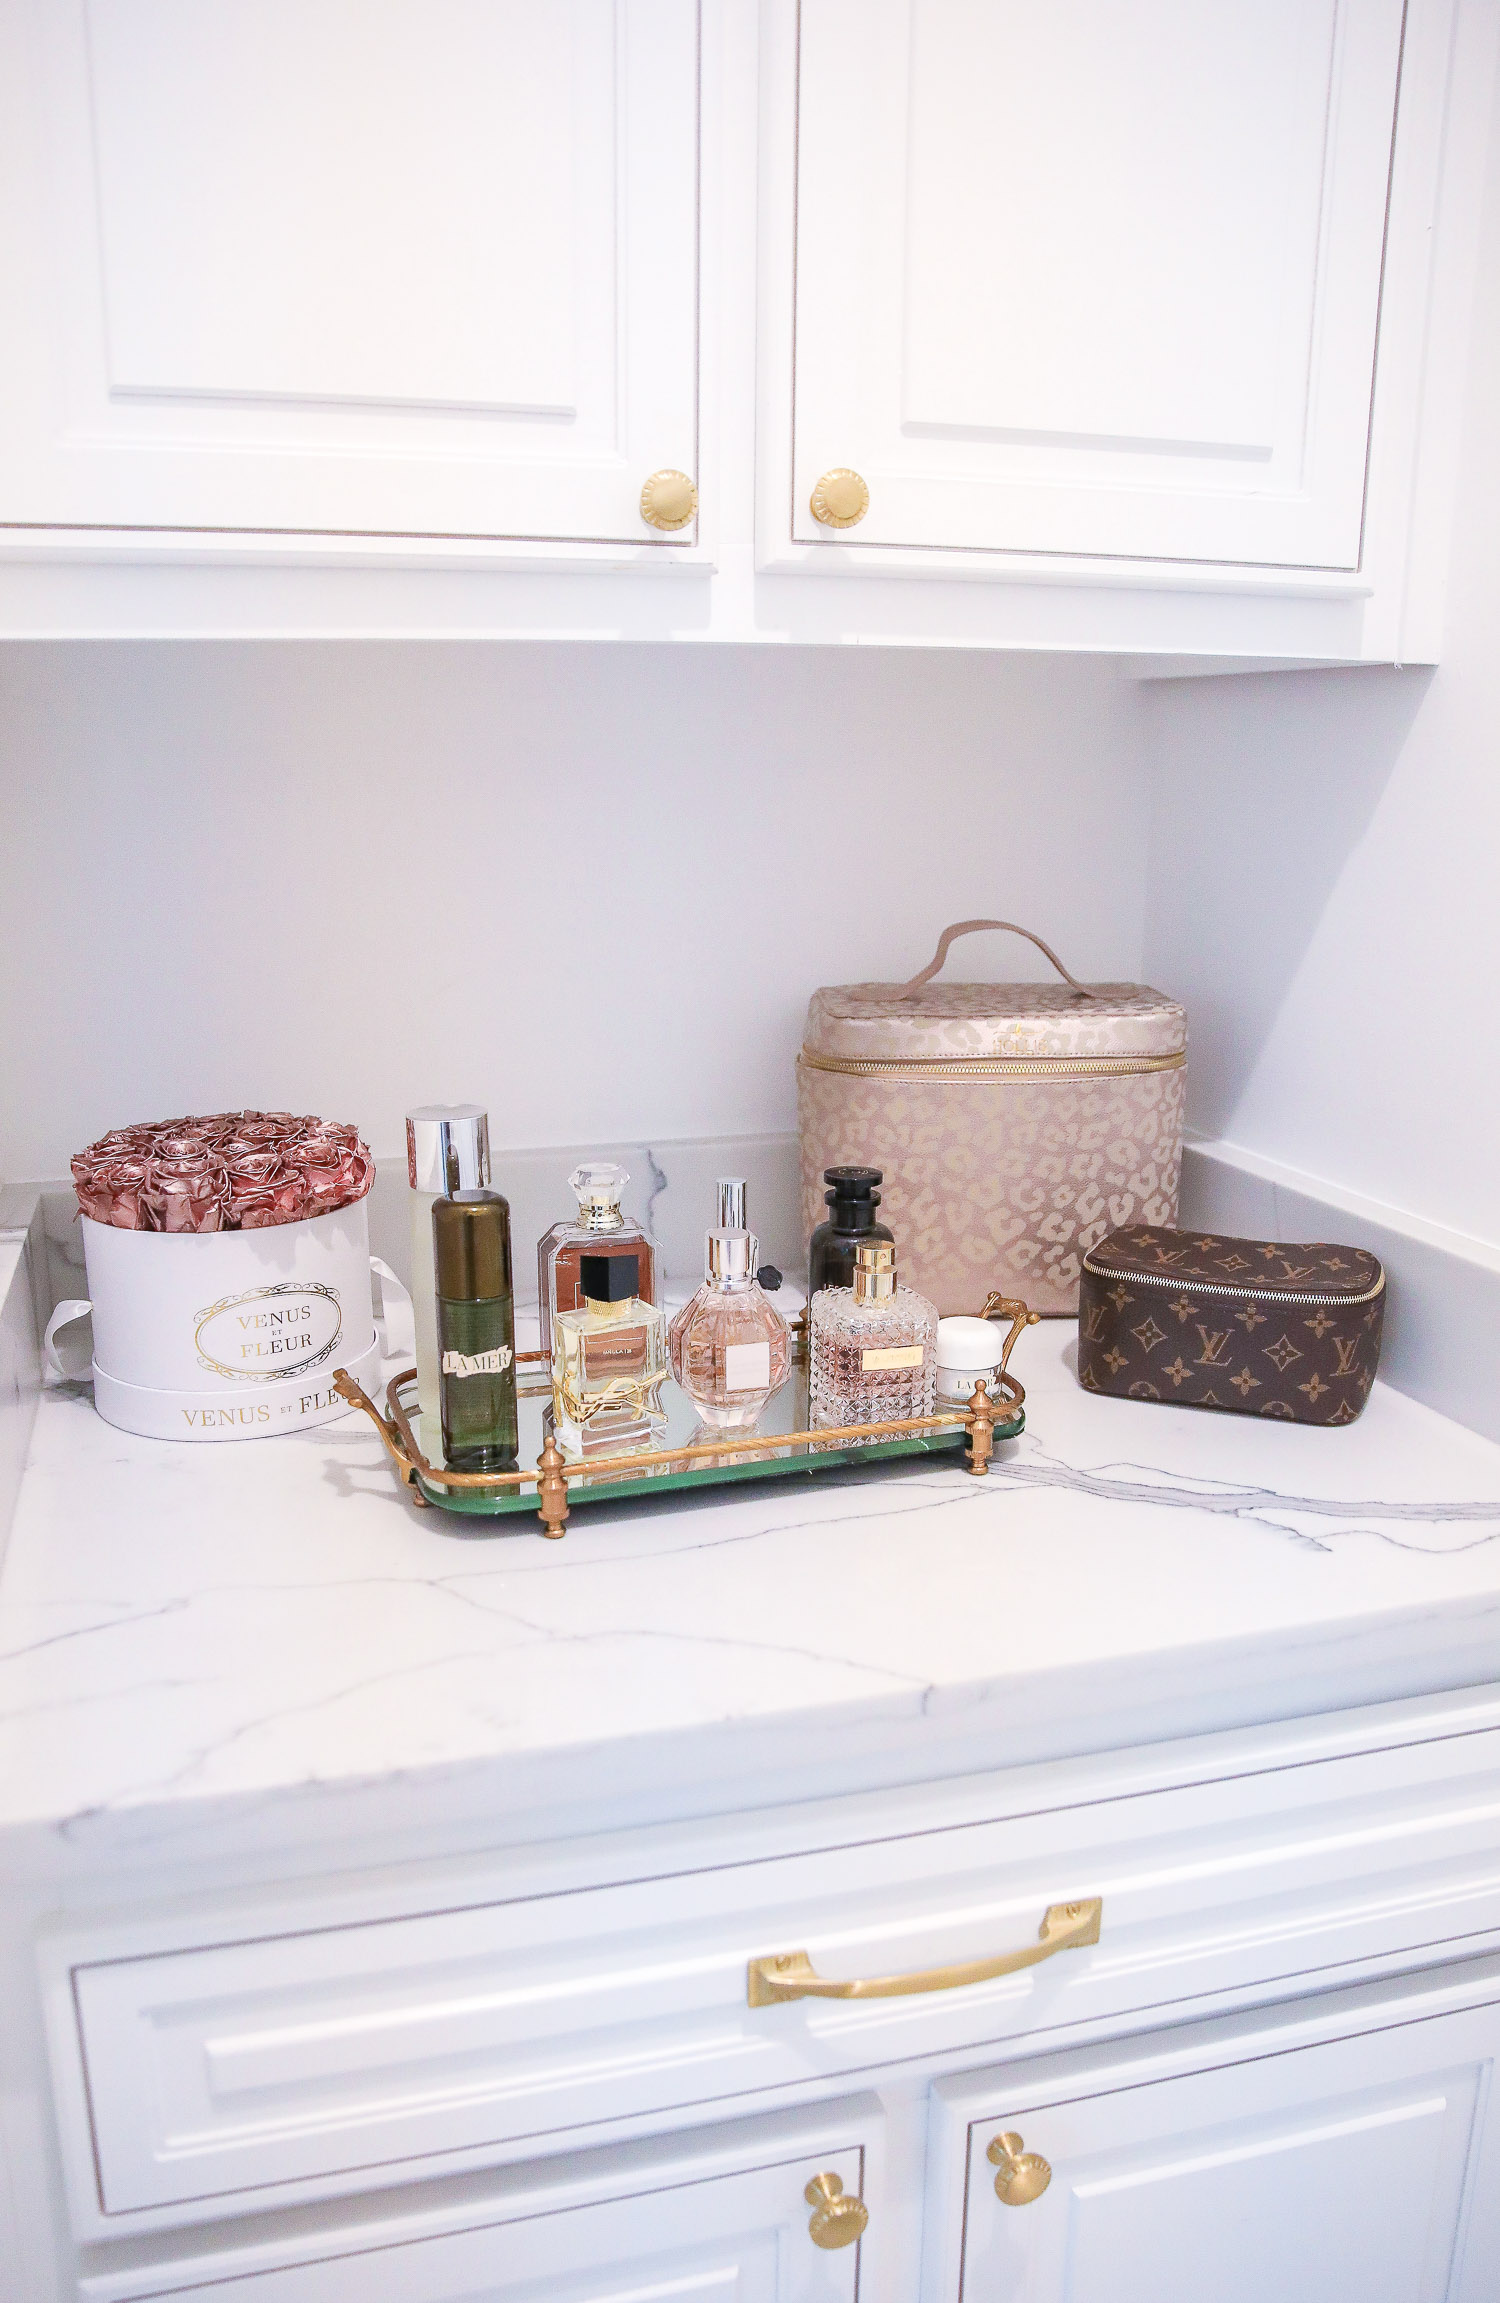 Top Picks by popular US life and style blog, The Sweetest Thing: image of a glass and gold metal tray filled with high end perfume bottles and resting on a white marble counter top next to a Louis Vuitton bag.